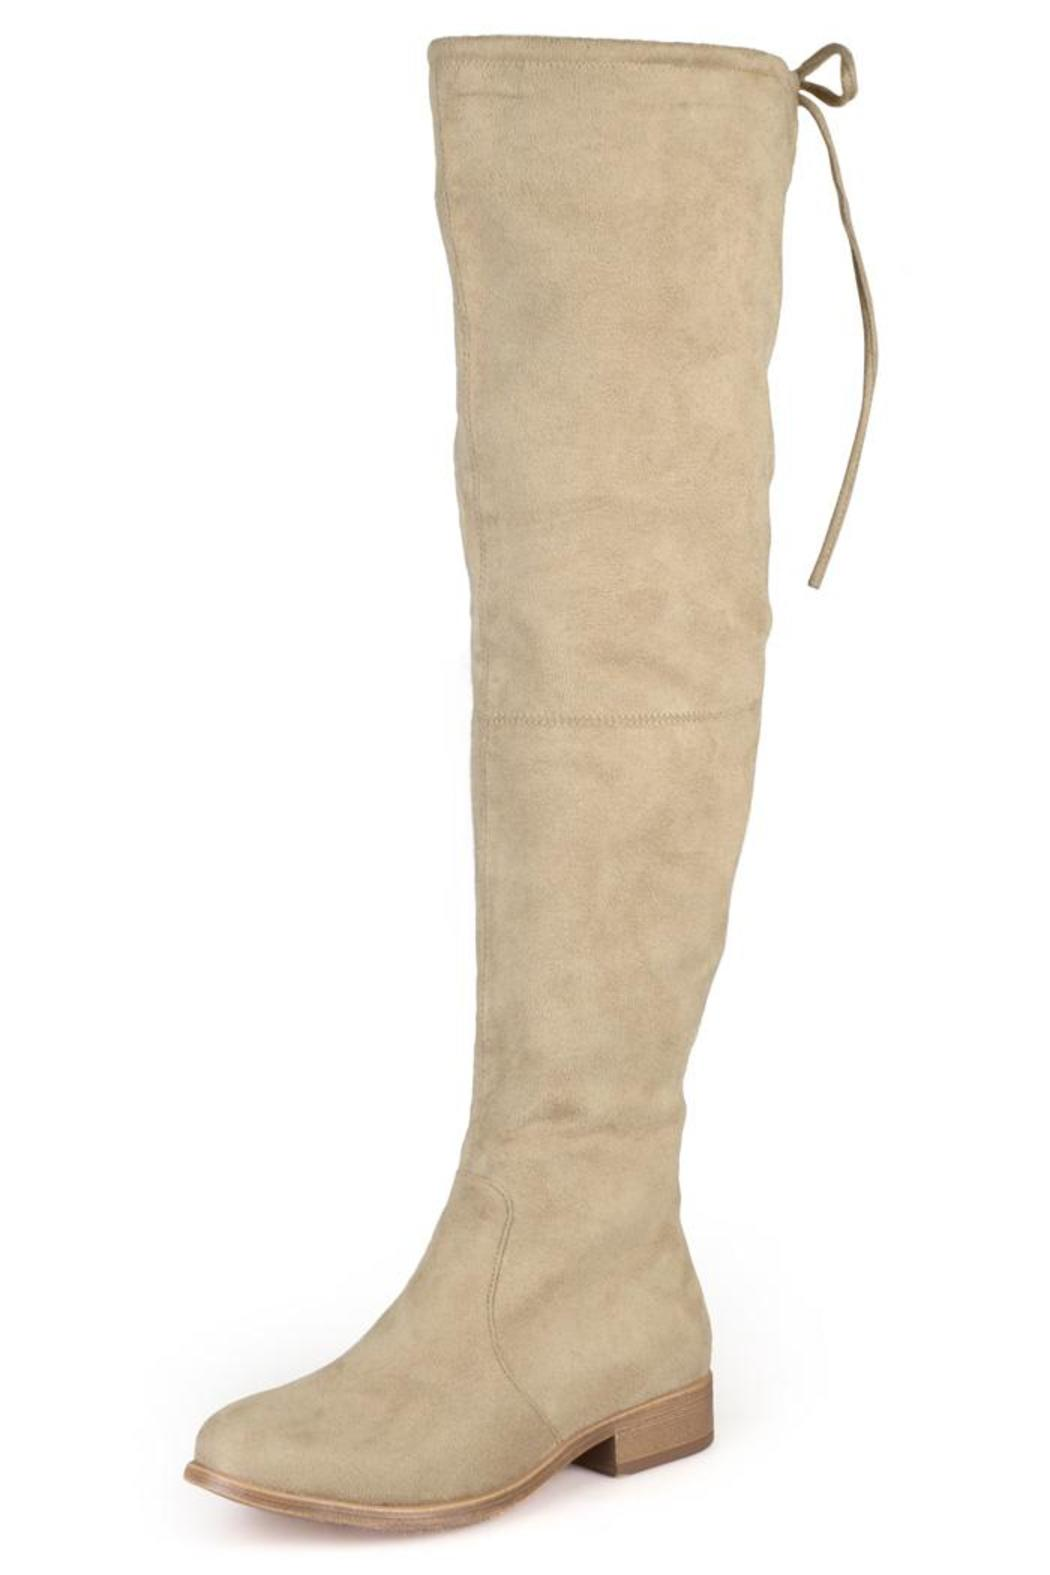 journee collection knee high boot from utah by